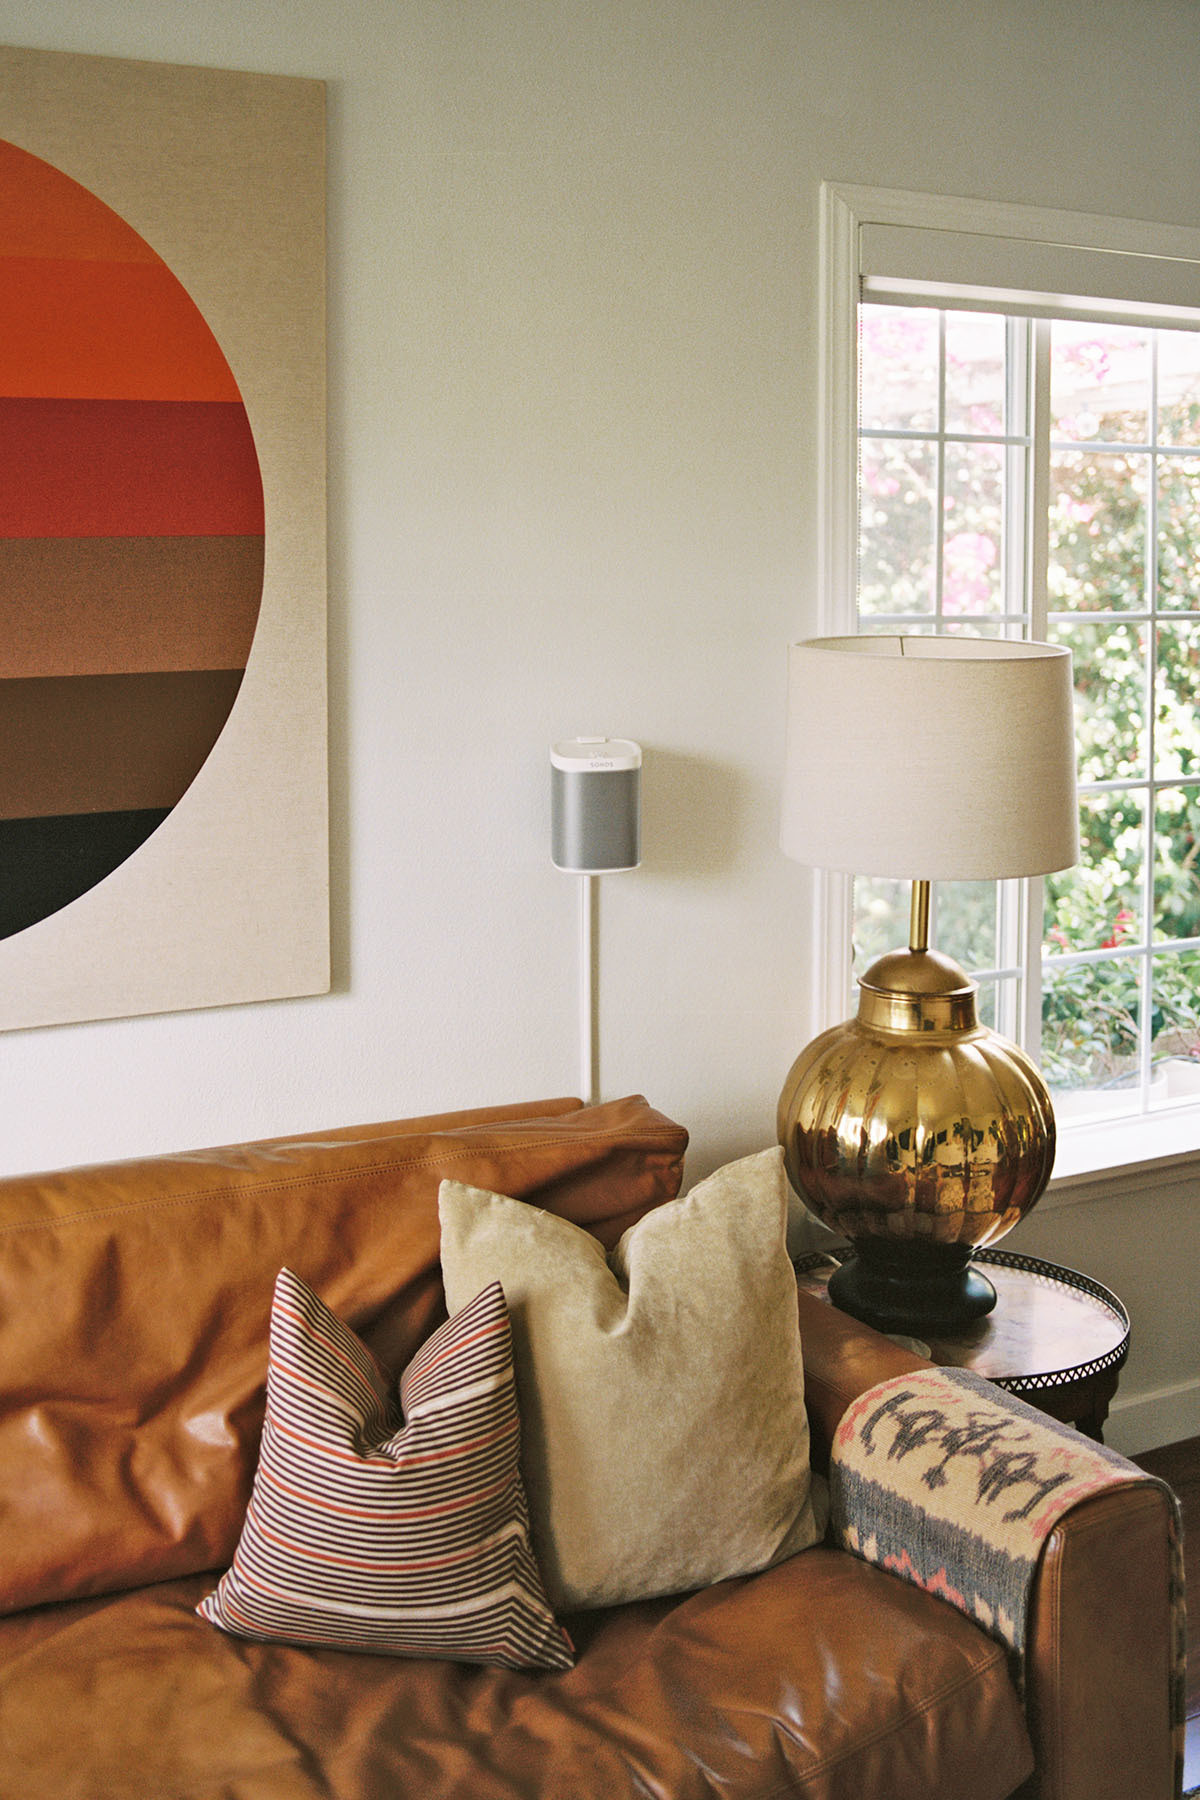 A well-wornRestoration Hardware sofa and sourced sentimental accents complete Madison's open living area.Missoni Home Throw Pillow |Urban AmericanaVintage Artwork | Vintage Table Lamp |Craigslist Side Table.